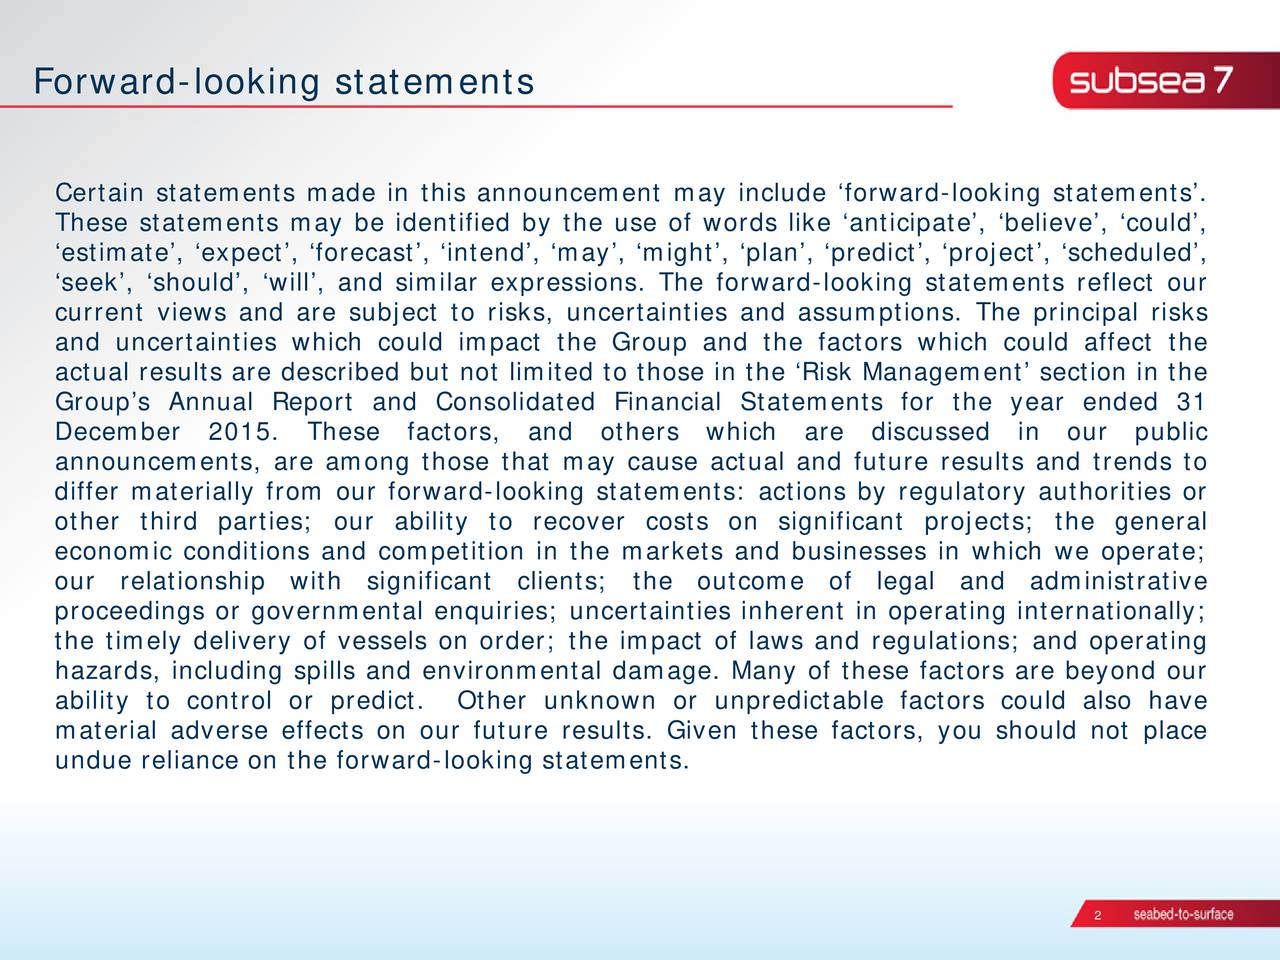 Certain statements made in this announcement may include forward-looking statements. These statements may be identified by the use of words like anticipate, believe, could, estimate, expect, forecast, intend, may, might, plan, predict, project, scheduled, seek, should, will, and similar expressions. The forward-looking statements reflect our current views and are subject to risks, uncertainties and assumptions. The principal risks and uncertainties which could impact the Group and the factors which could affect the actual results are described but not limited to those in the Risk Management section in the Groups Annual Report and Consolidated Financial Statements for the year ended 31 December 2015. These factors, and others which are discussed in our public announcements, are among those that may cause actual and future results and trends to differ materially from our forward-looking statements: actions by regulatory authorities or other third parties; our ability to recover costs on significant projects; the general economic conditions and competition in the markets and businesses in which we operate; our relationship with significant clients; the outcome of legal and administrative proceedings or governmental enquiries; uncertainties inherent in operating internationally; the timely delivery of vessels on order; theimpact of laws and regulations; and operating hazards, including spills and environmental damage. Many of these factors are beyond our ability to control or predict. Other unknown or unpredictable factors could also have material adverse effects on our future results. Given these factors, you should not place undue reliance on the forward-looking statements. 2